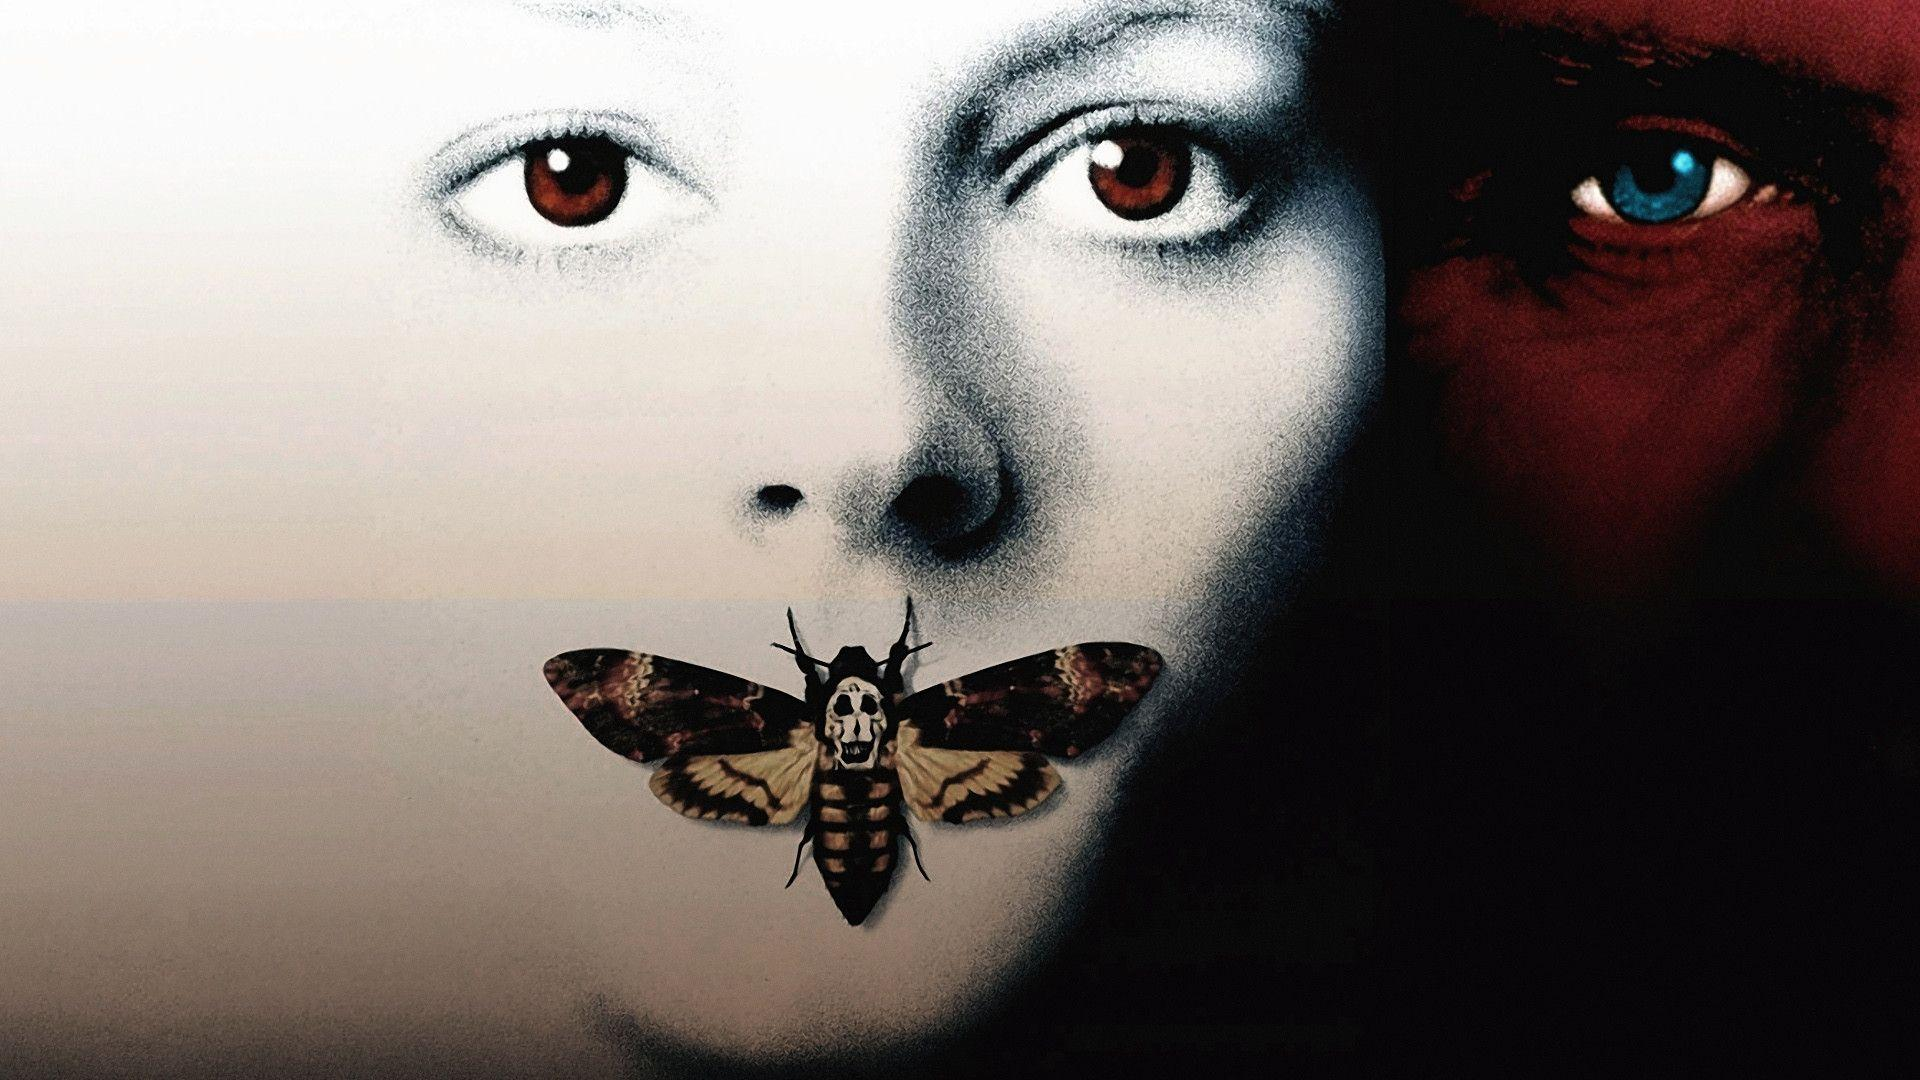 The Silence Of The Lambs Wallpapers 5 - 1920 X 1080 | stmed.net